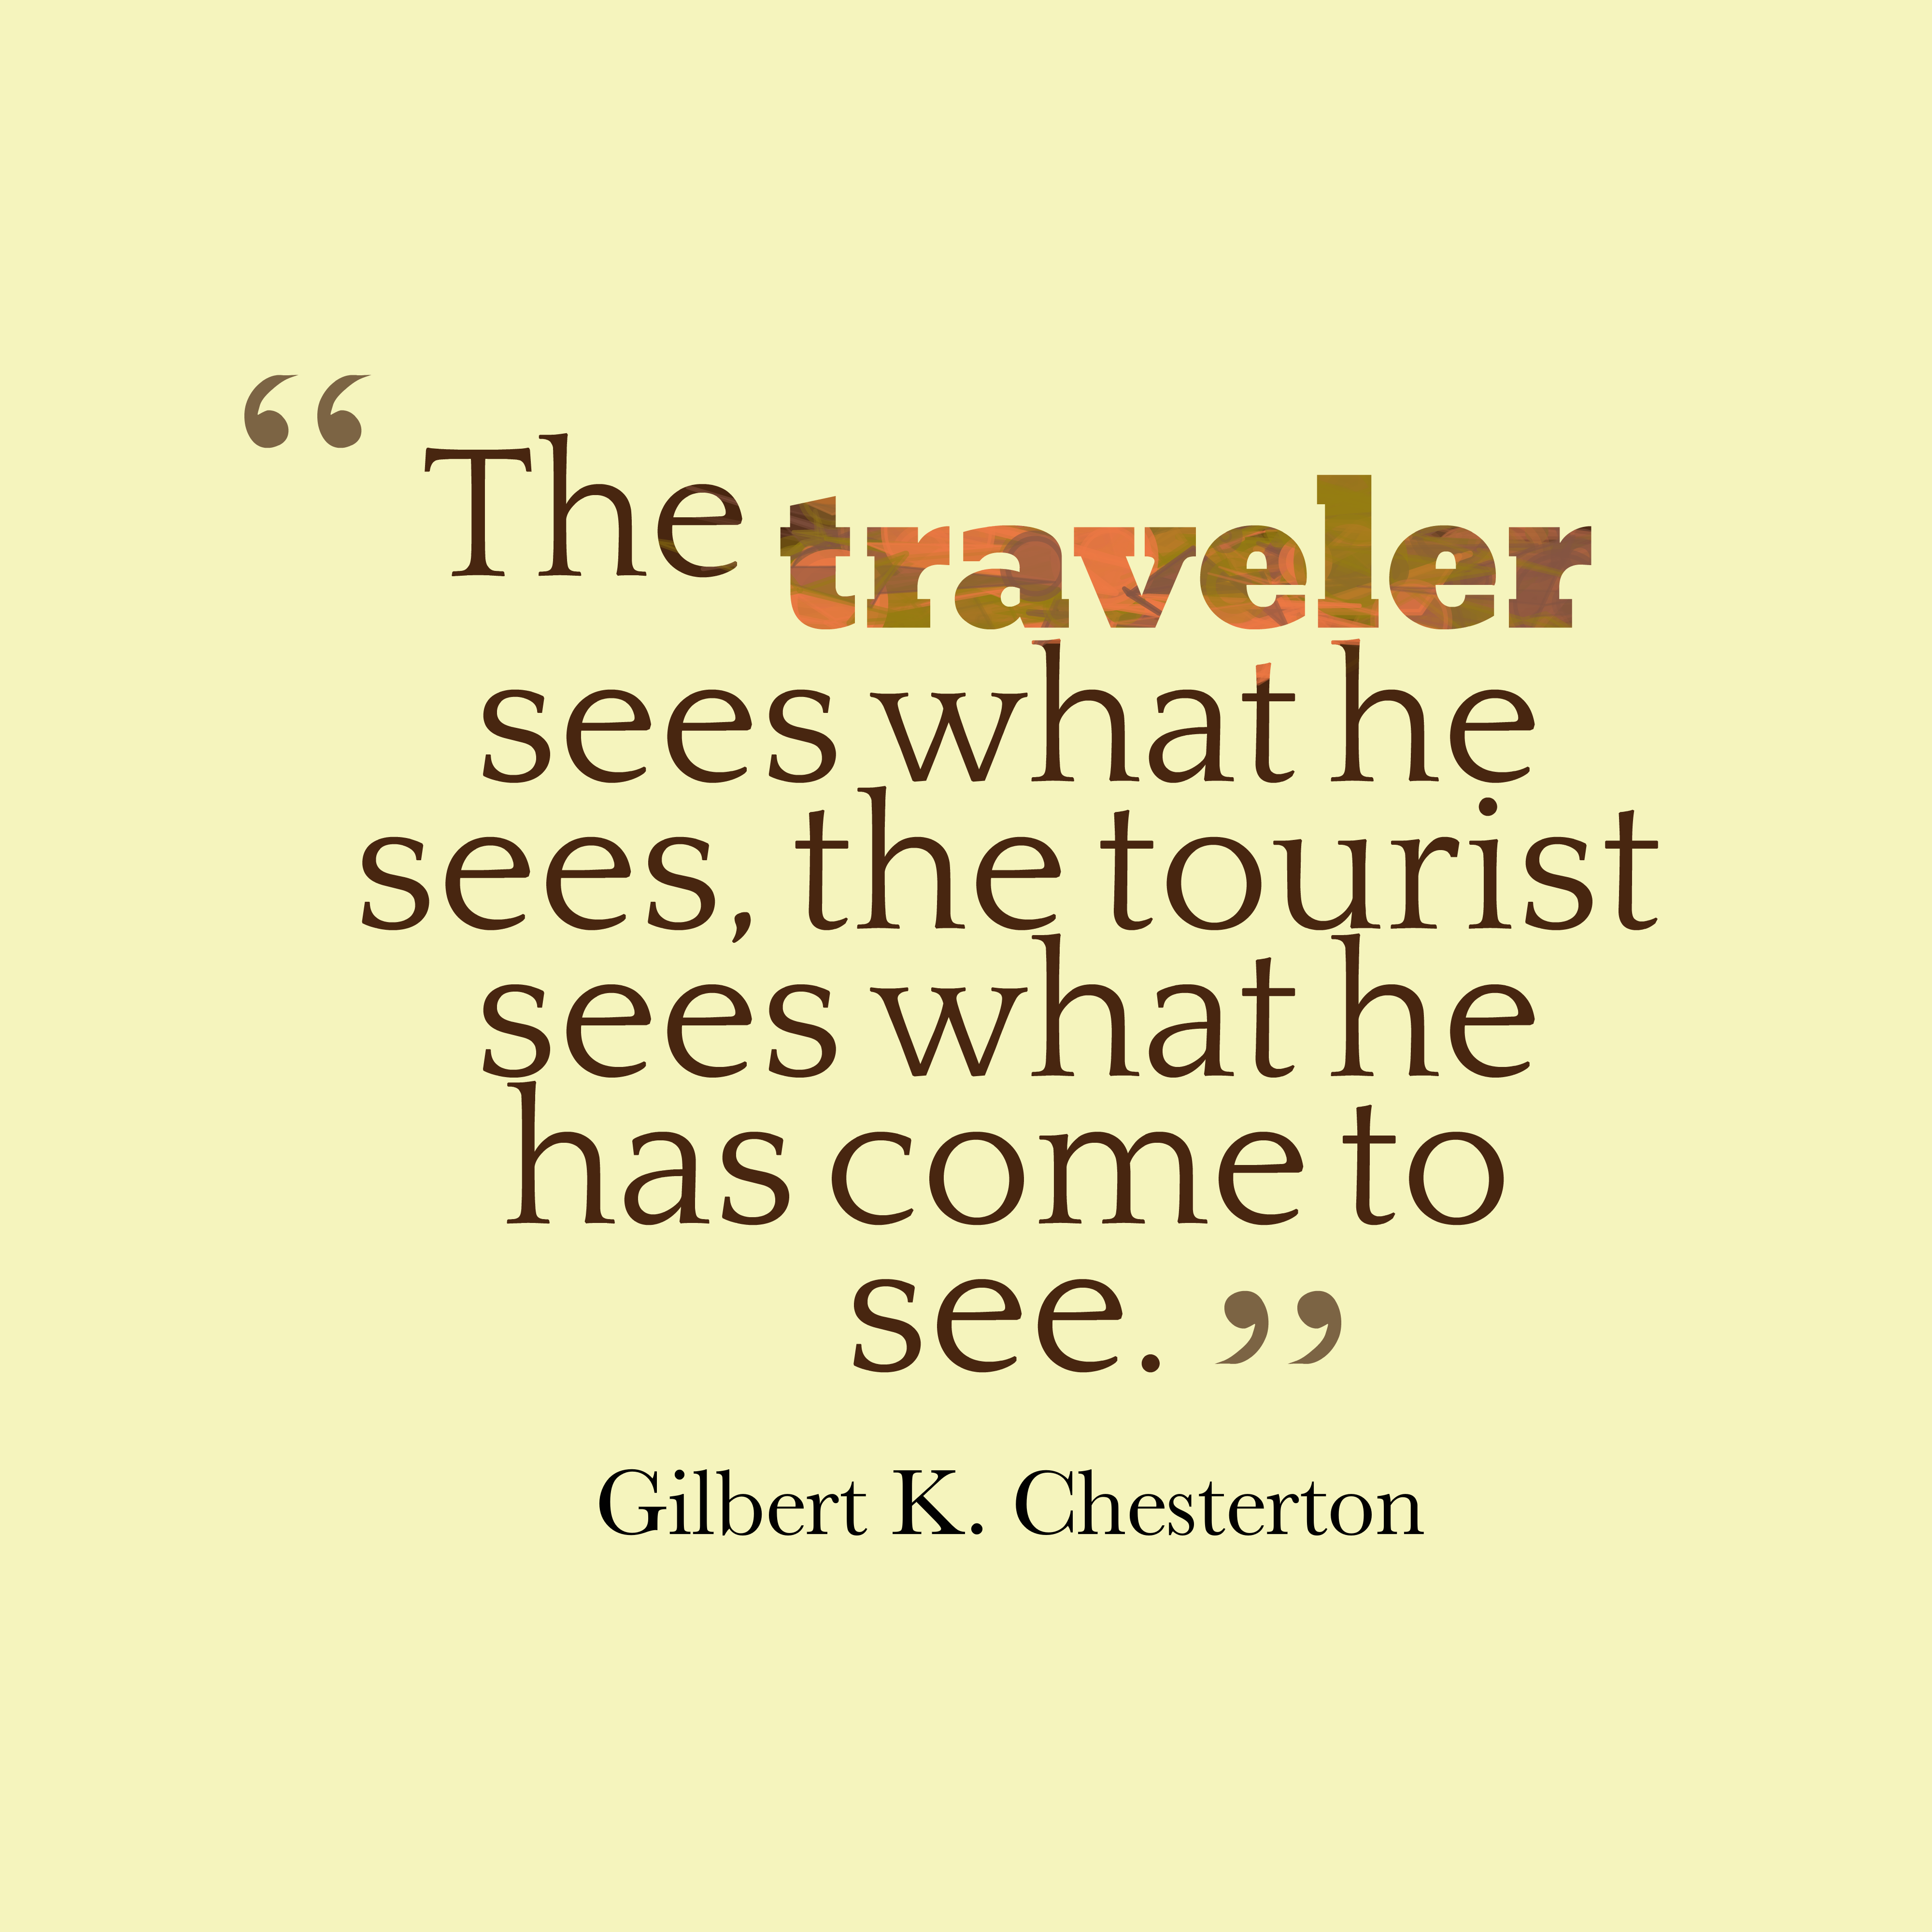 Quotes image of The traveler sees what he sees, the tourist sees what he has come to see.